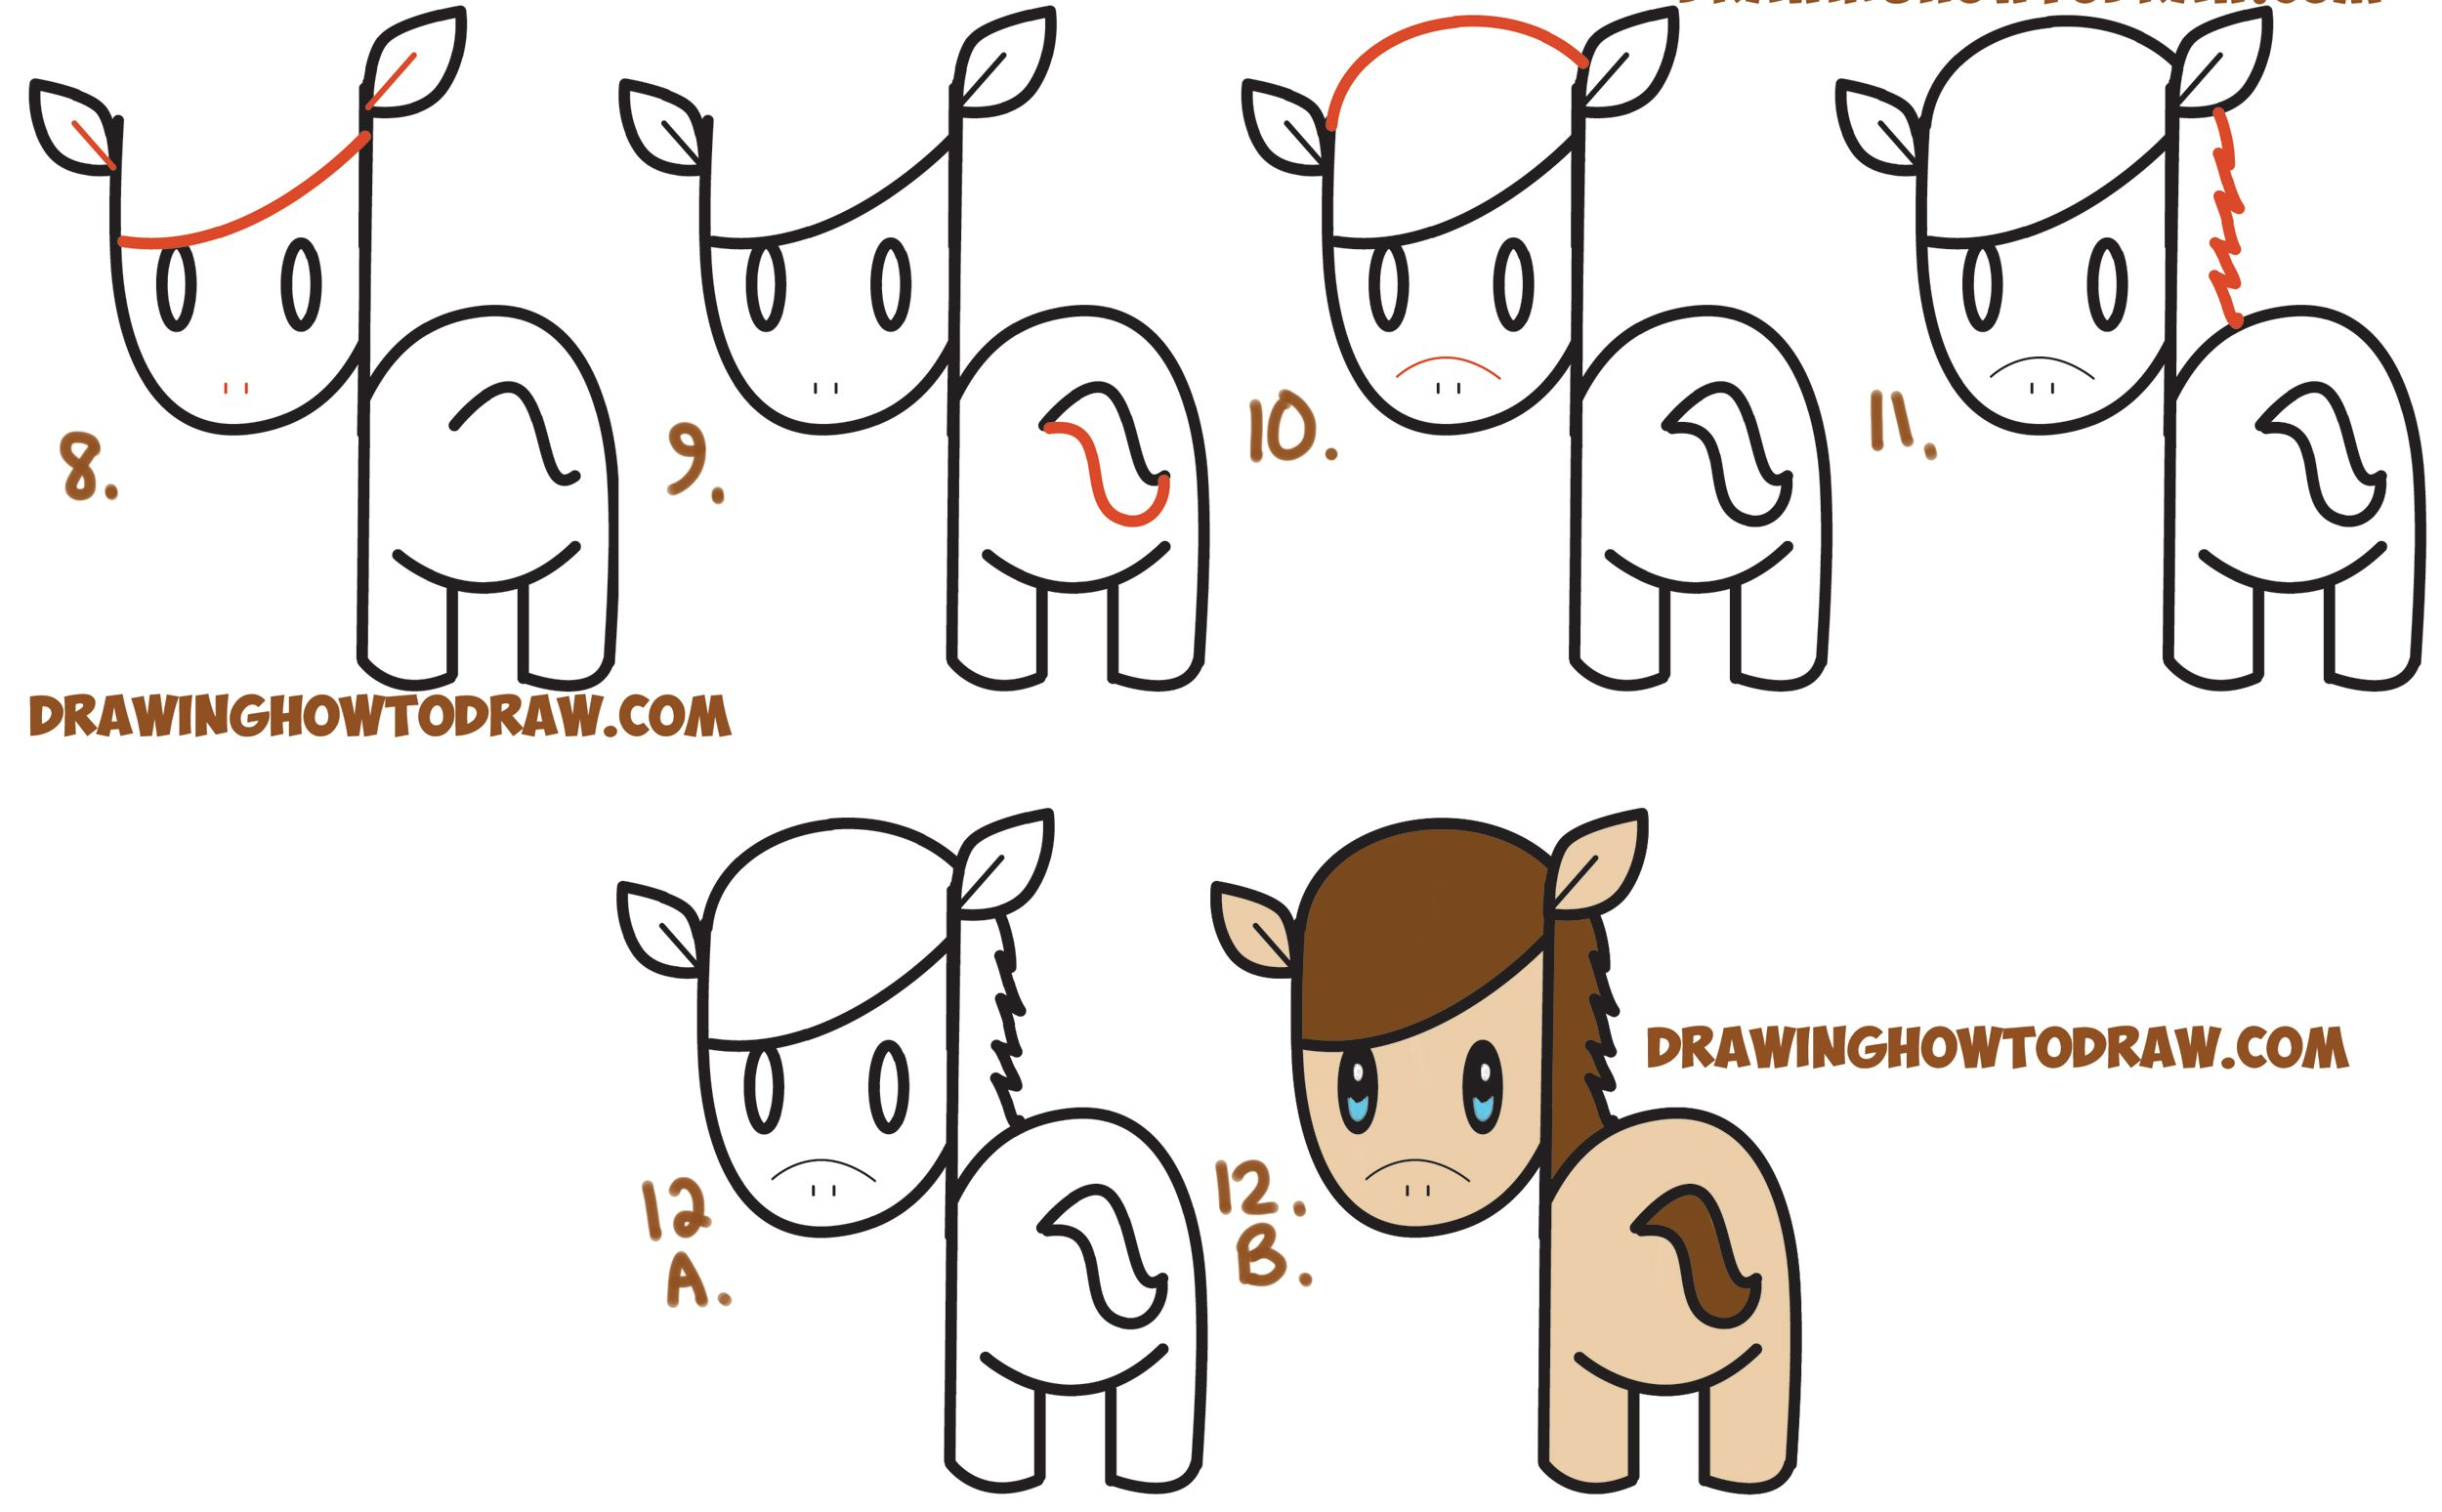 How To Draw A Cute Kawaii Chibi Horse From Letters And